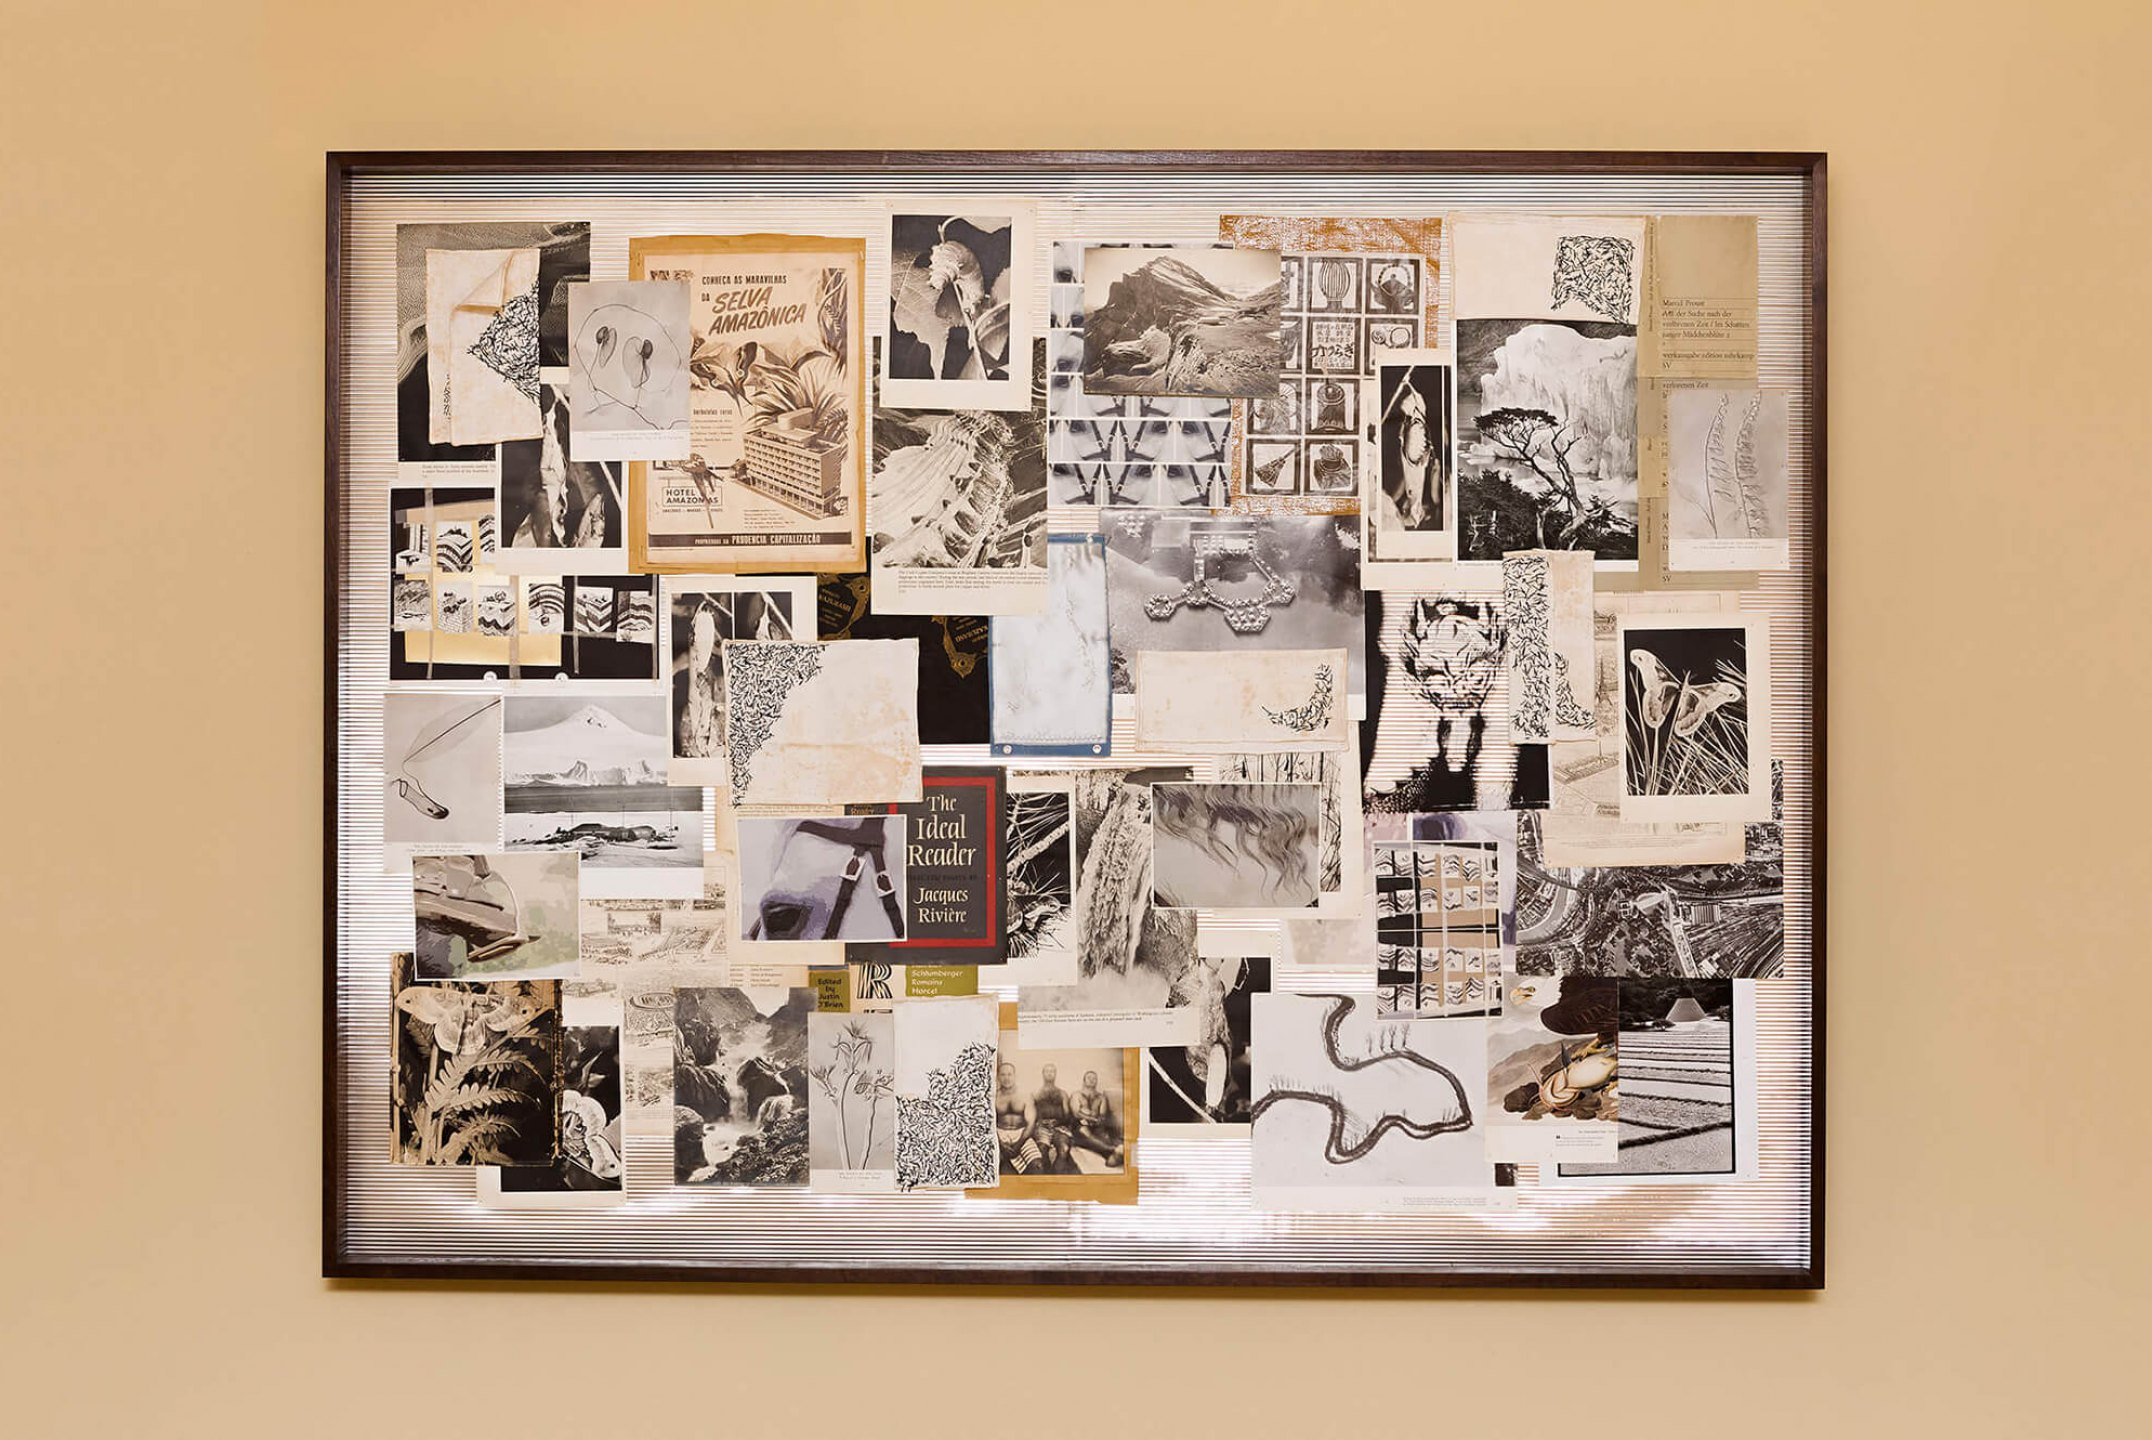 f.marquespeteado, <em>Storyboard Jonas</em>, 2002/2014, print on paper and fabric, graphite on paper, photographs, newspaper and files on metallized paper framed, 120 × 162 × 8 cm - Mendes Wood DM